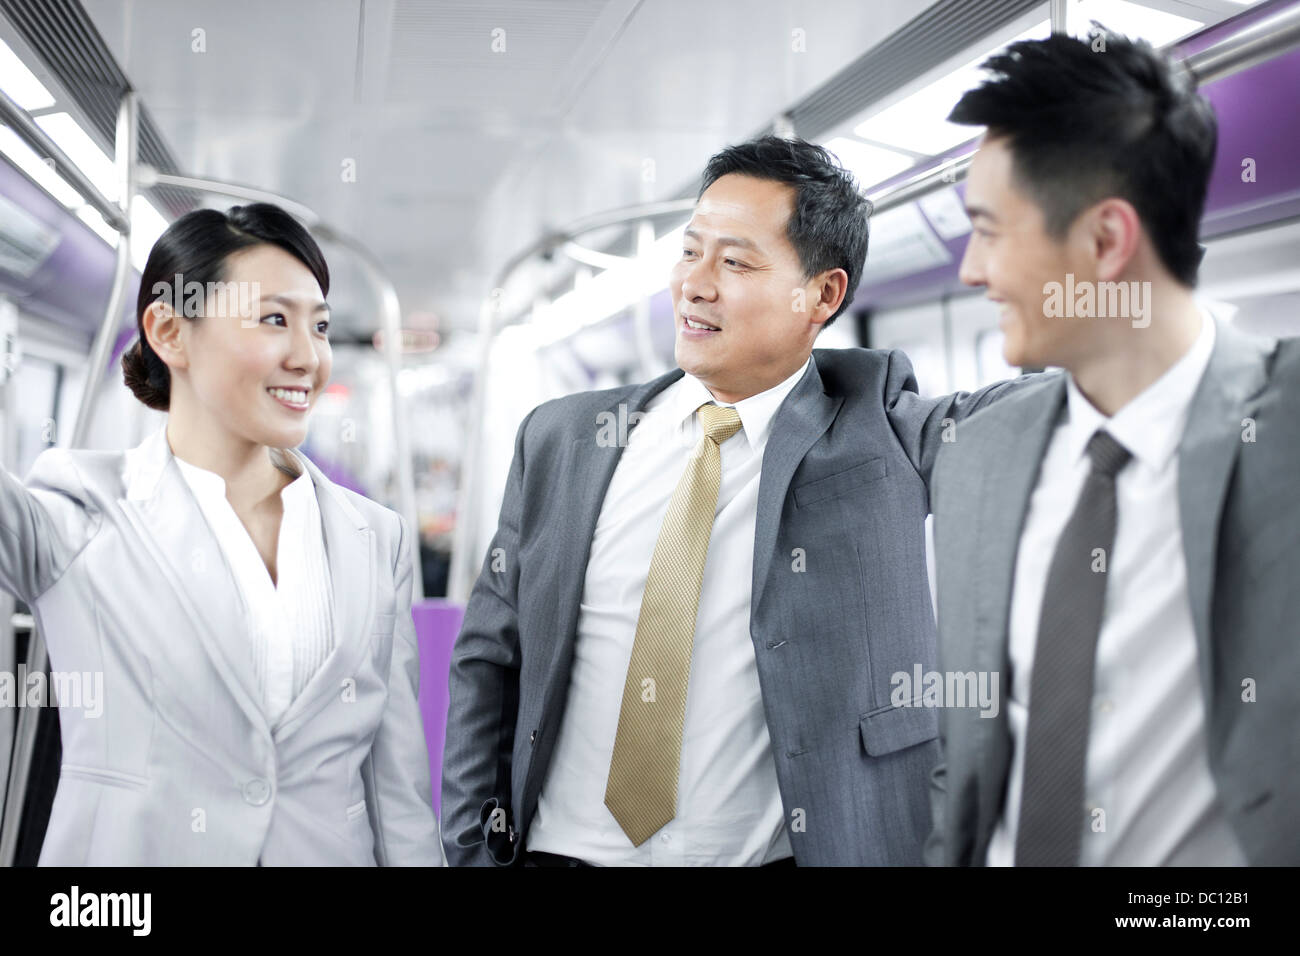 Cheerful business persons in subway train Stock Photo